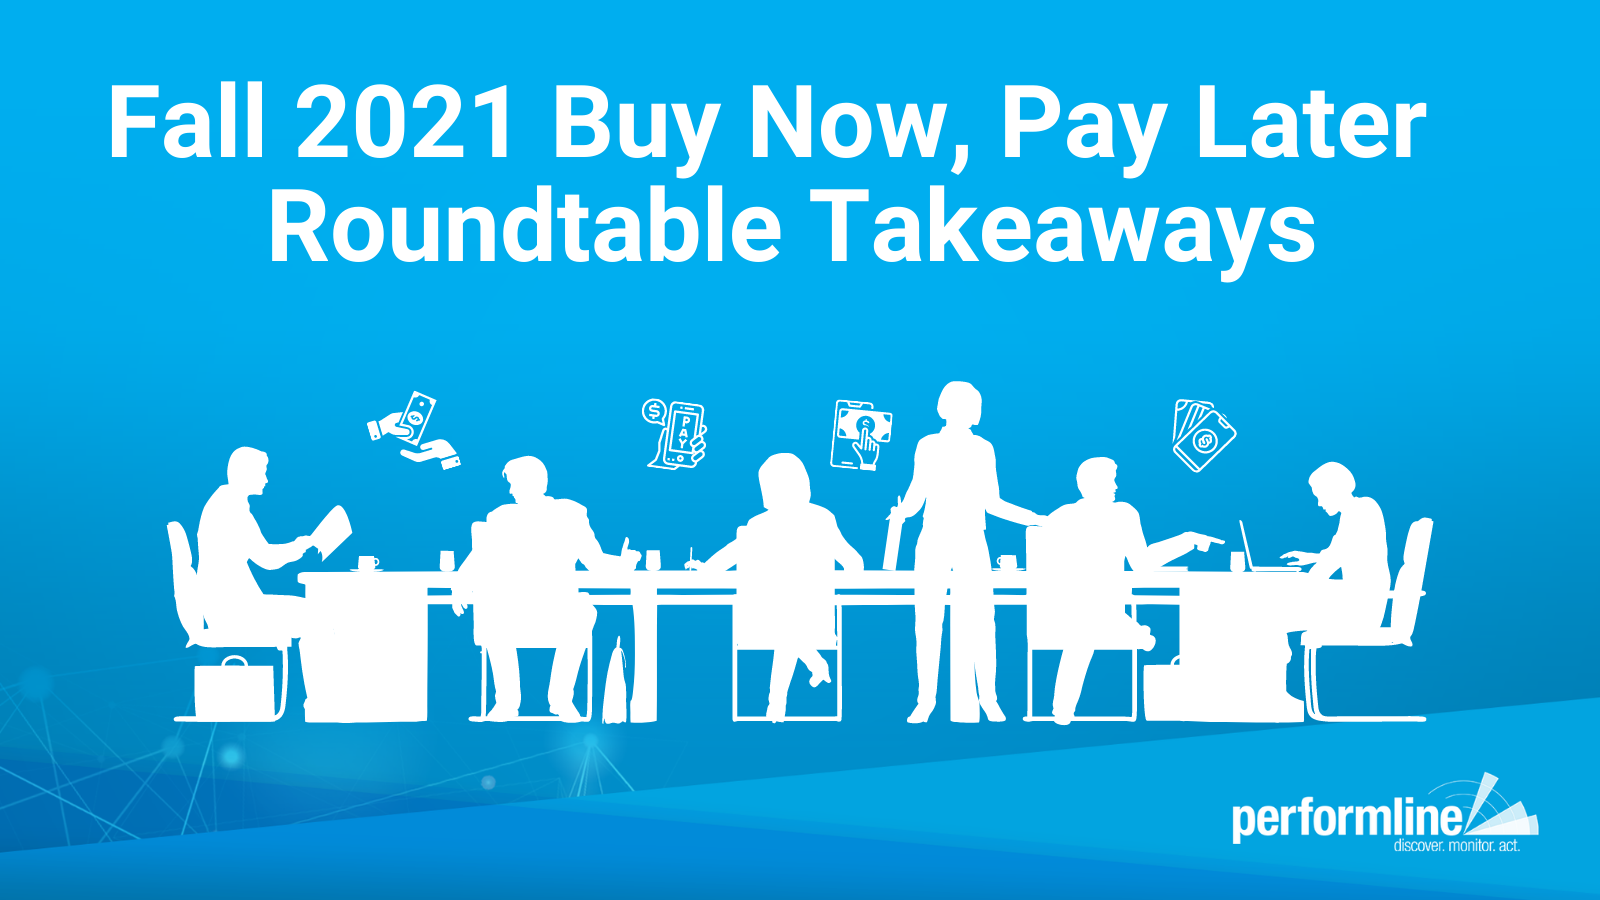 Fall 2021 Buy Now, Pay Later Roundtable Takeaways